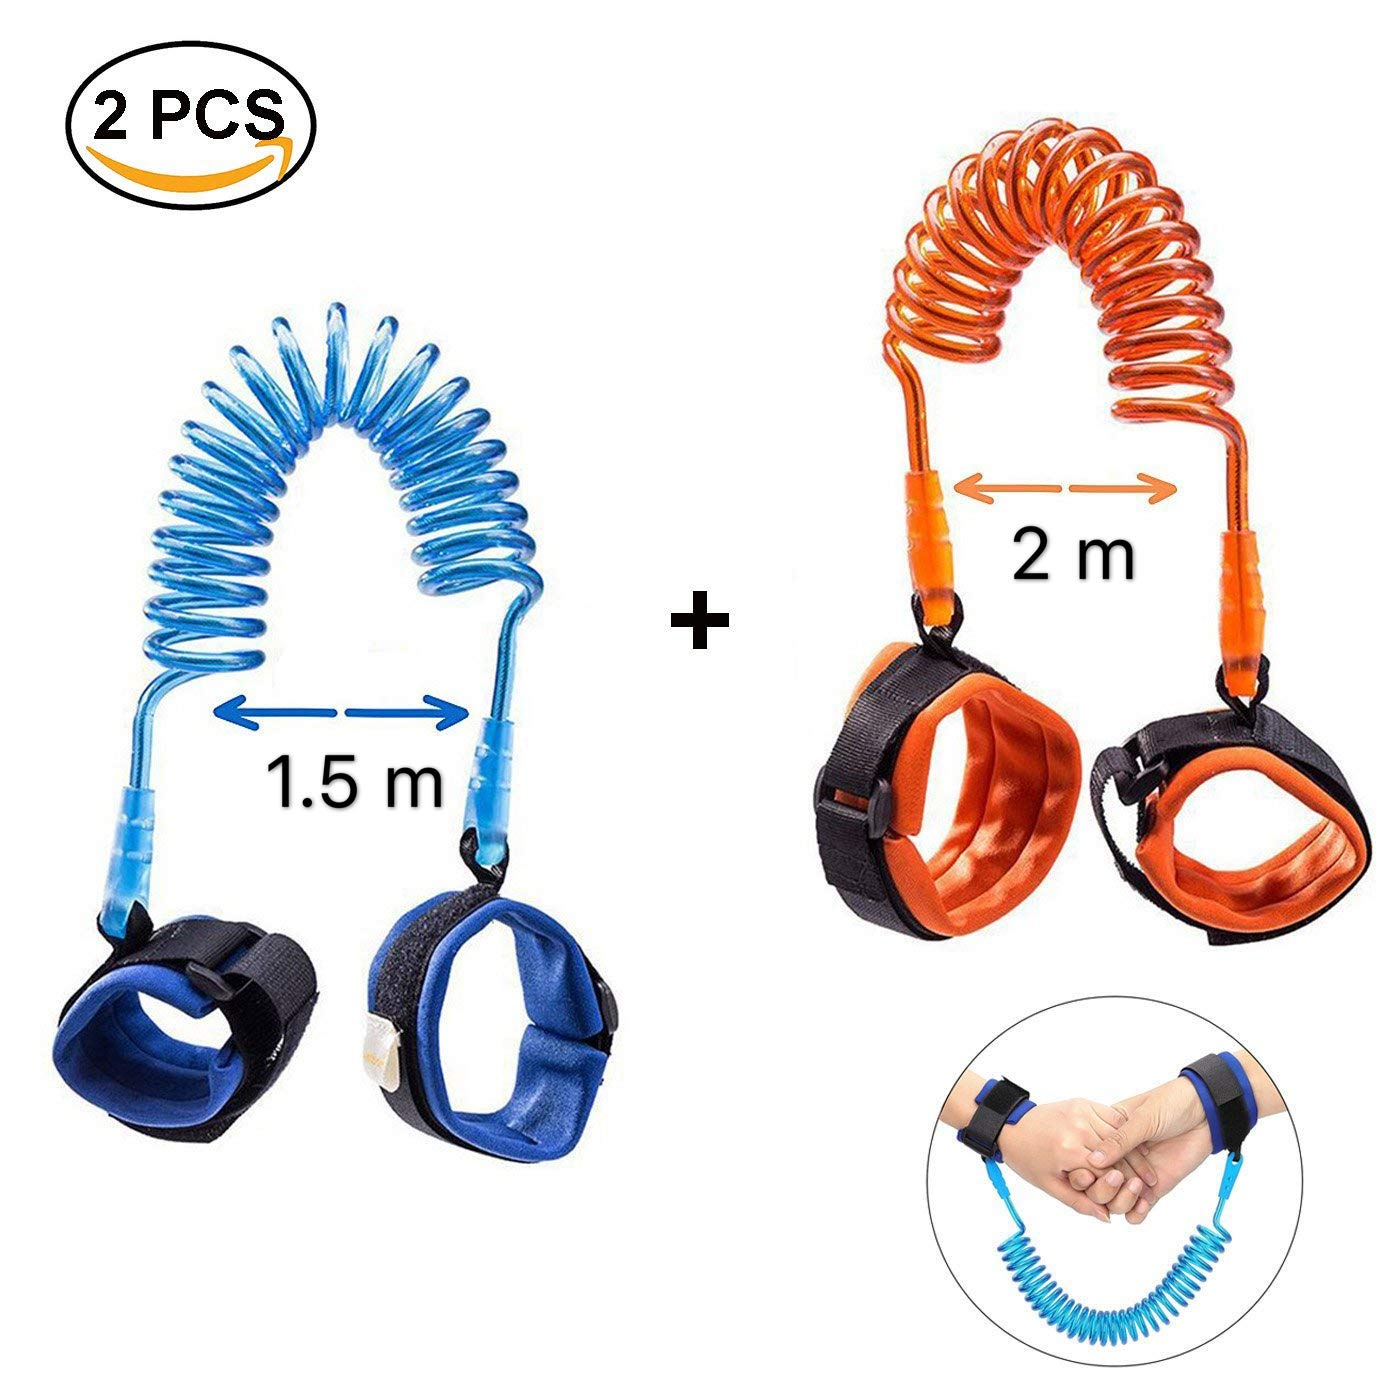 EEM 2 Pack Elastic Toddler Arnés Walking Leash - Child Anti Lost Enlace de muñeca - Arnés de seguridad para niños - 2M Orange + 1.5M Blue- Seguridad para niños Correa de muñeca - Baby Safety Wristband East Eagle Technology